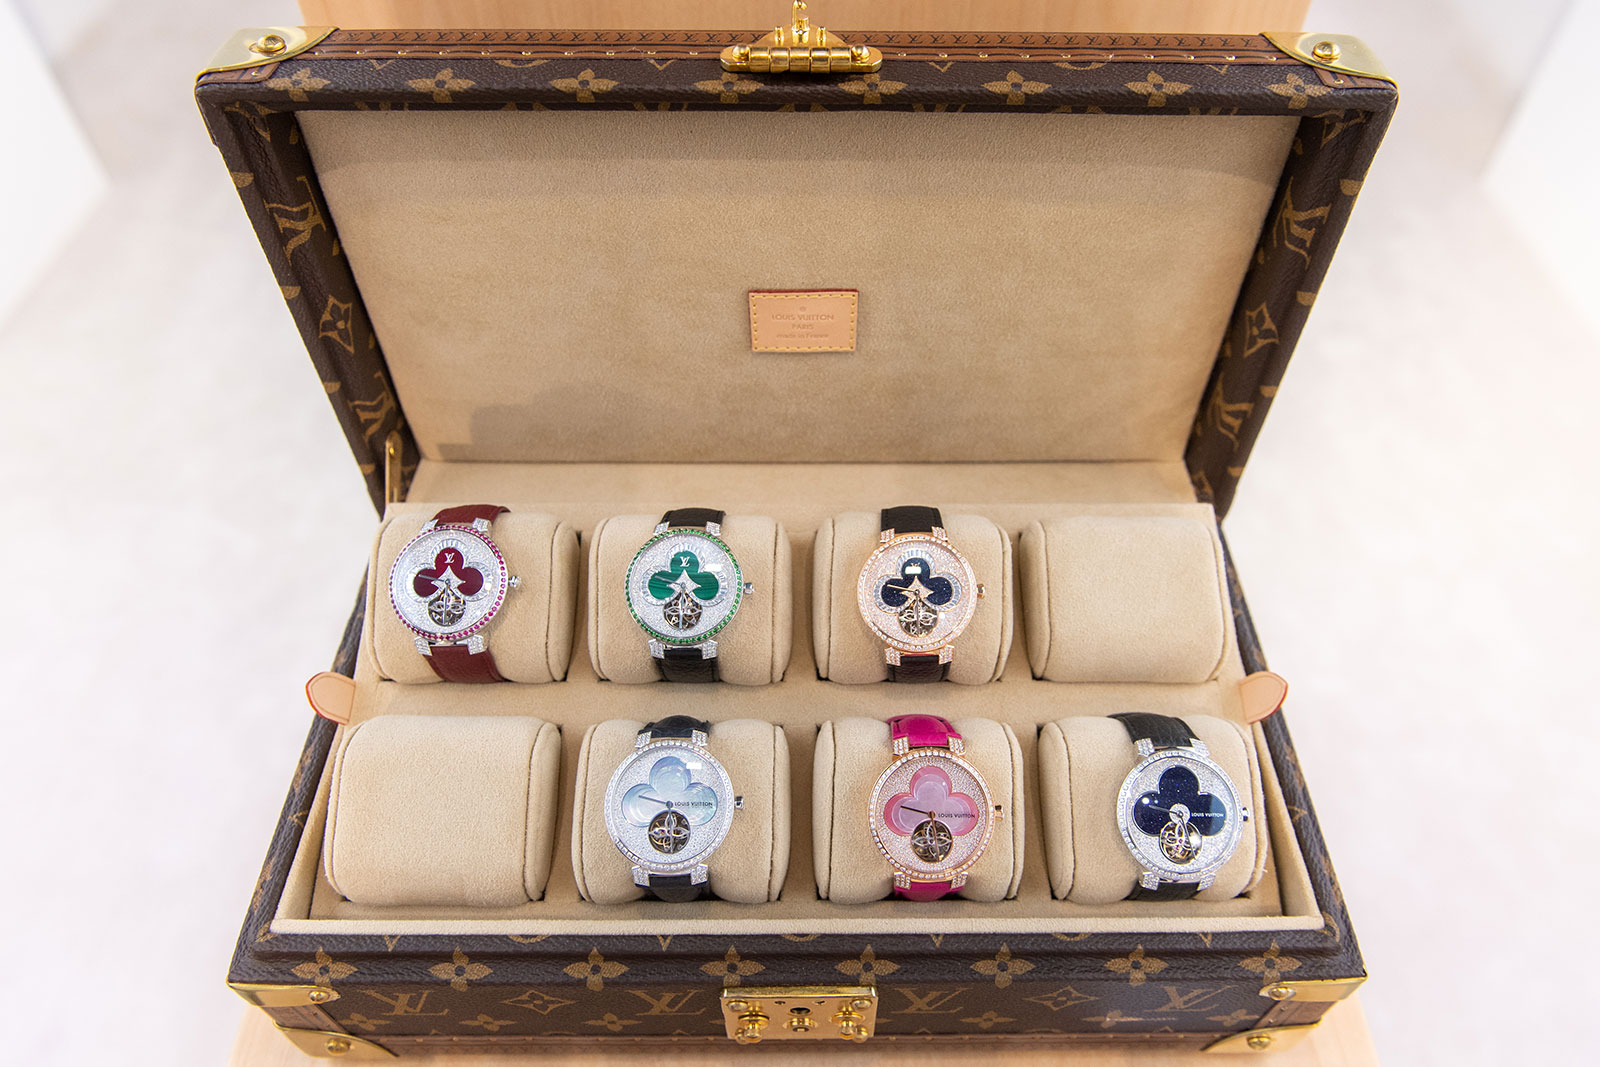 Louis-Vuitton-watch trunk Bangkok 2018 3